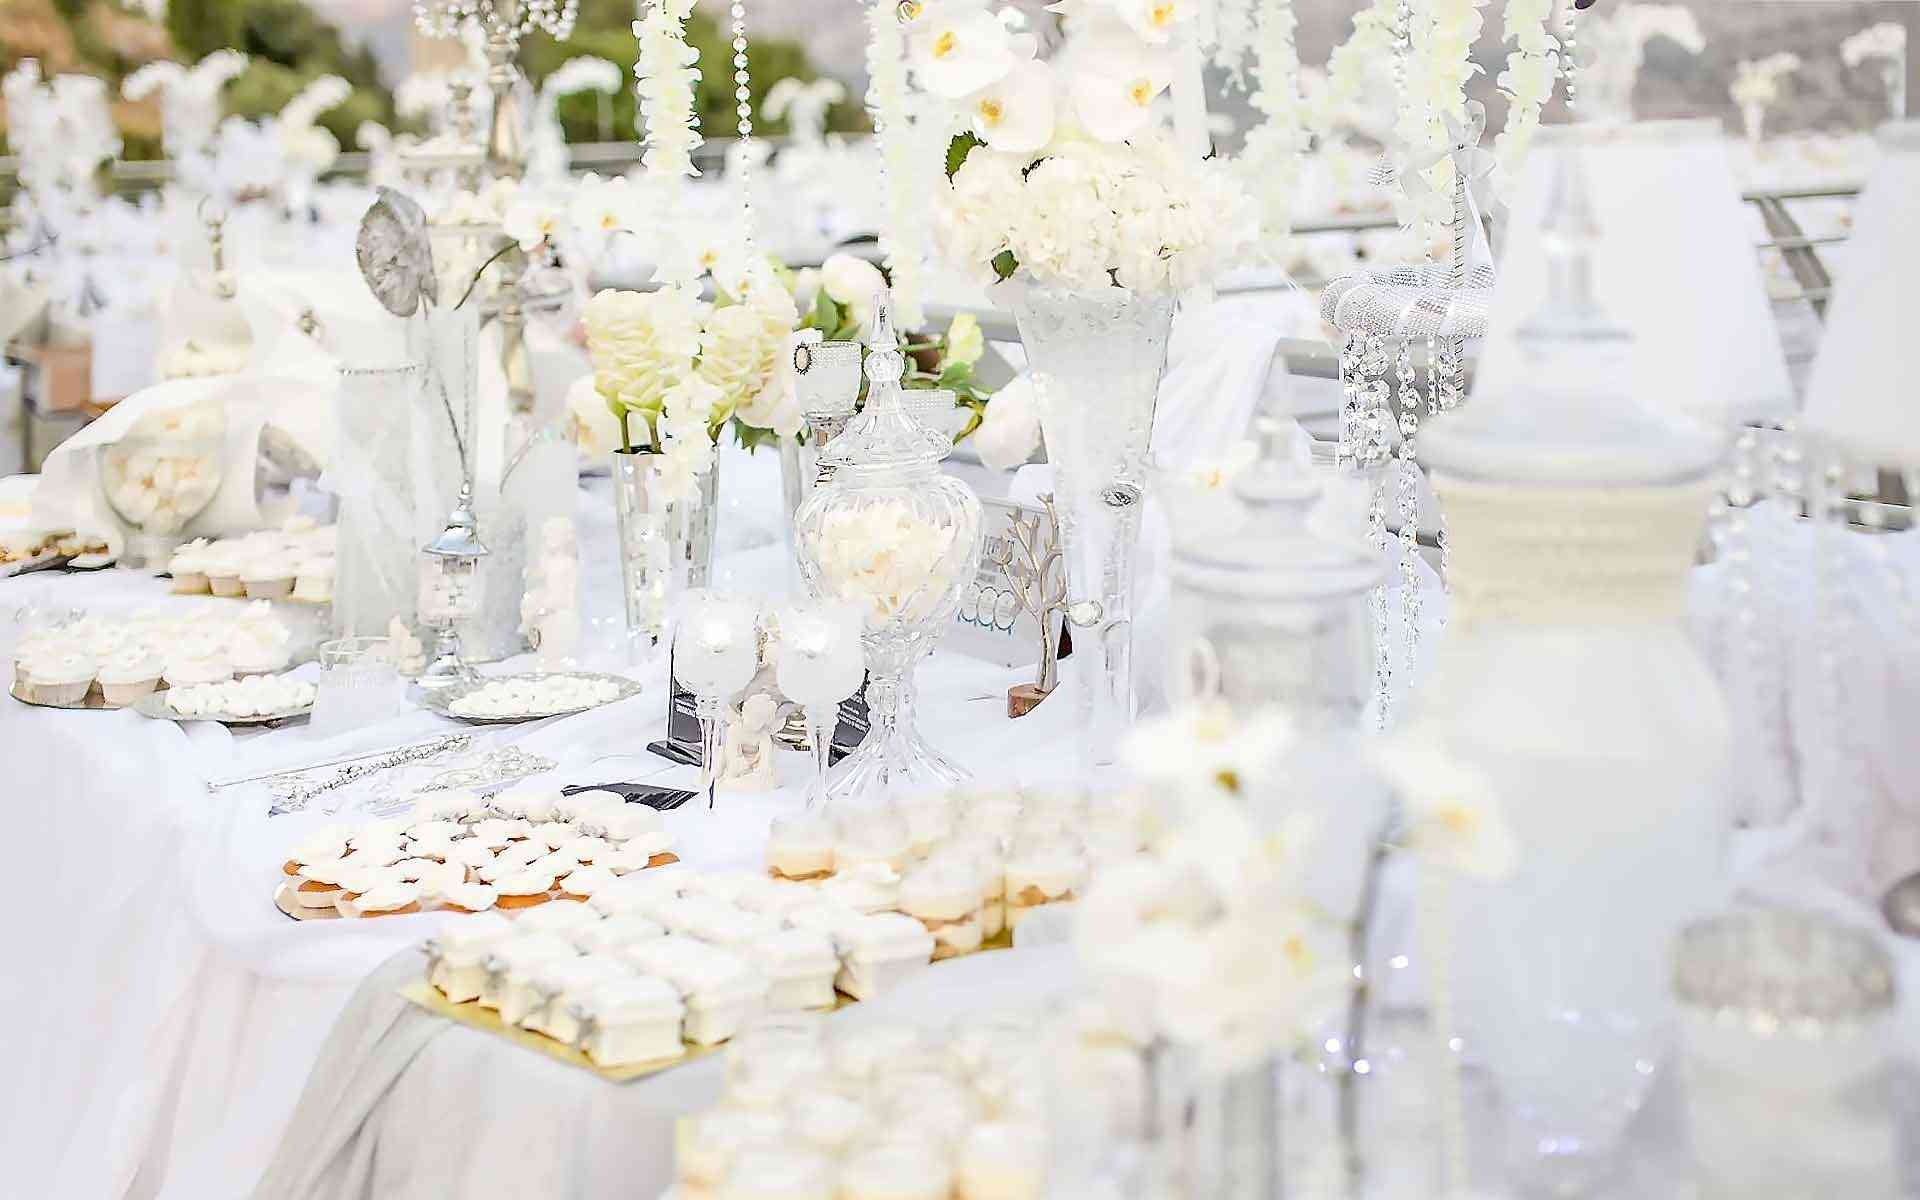 Luxurious-All-White-Wedding-Dessert-Table-by-Diamond-Events-Wedding-Event